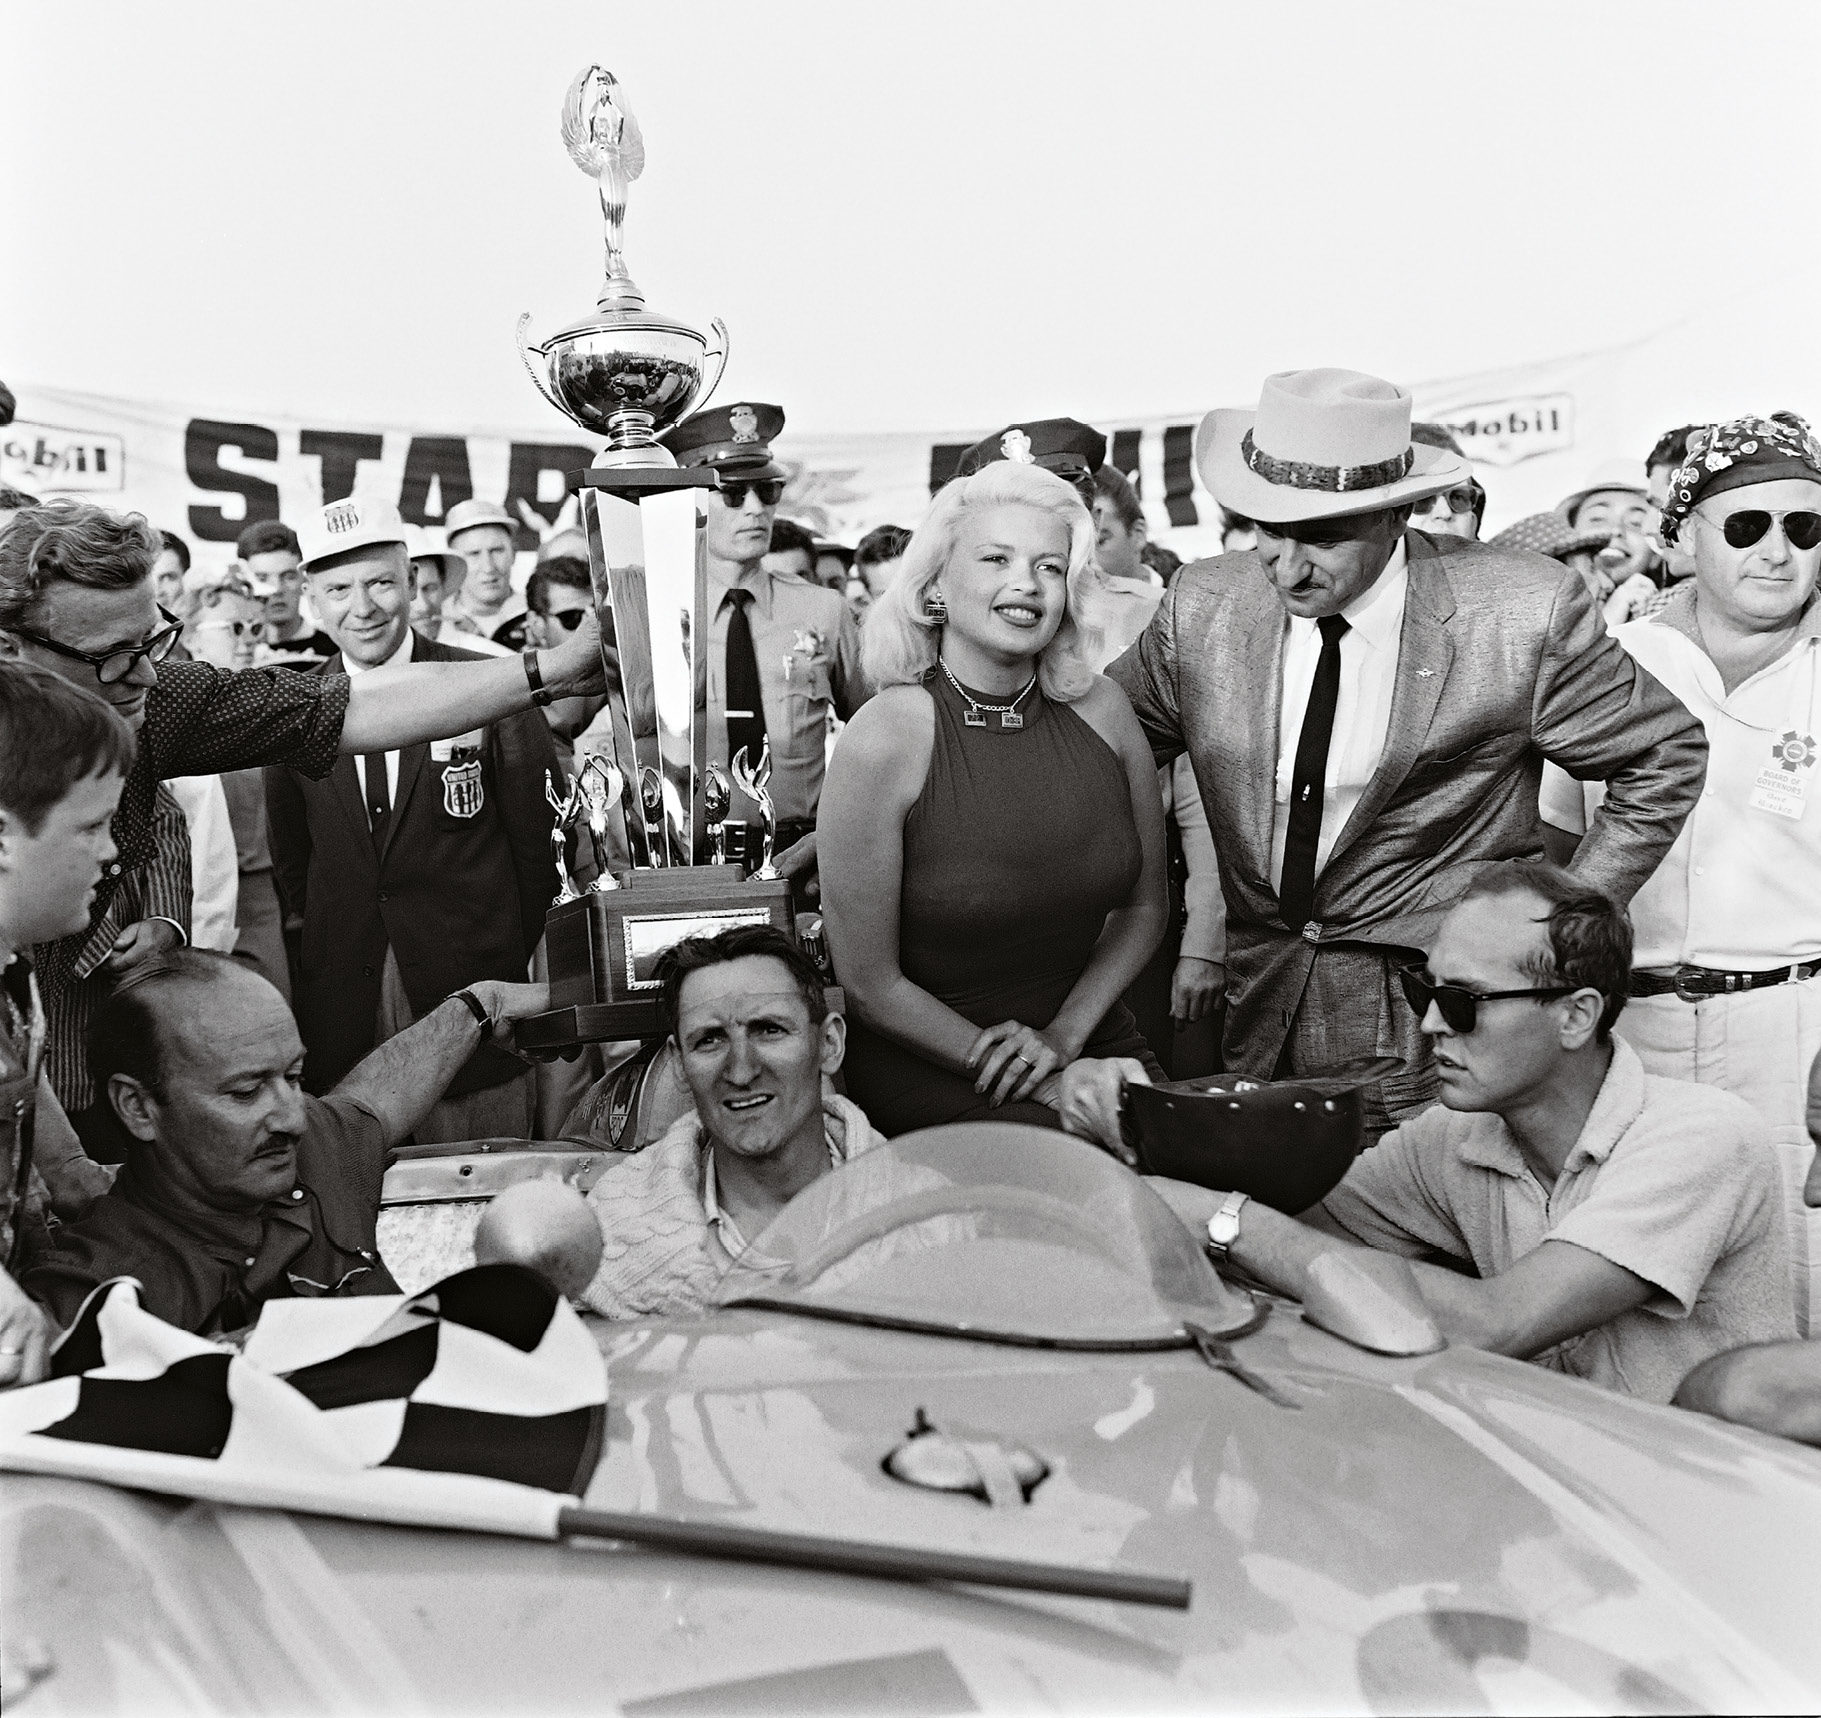 The spoils of victory in a 1959 USAC race at Pomona. Miles got a celebratory kiss from actress Jayne Mansfield. Otto Zipper, the car's owner, sits in the passenger seat